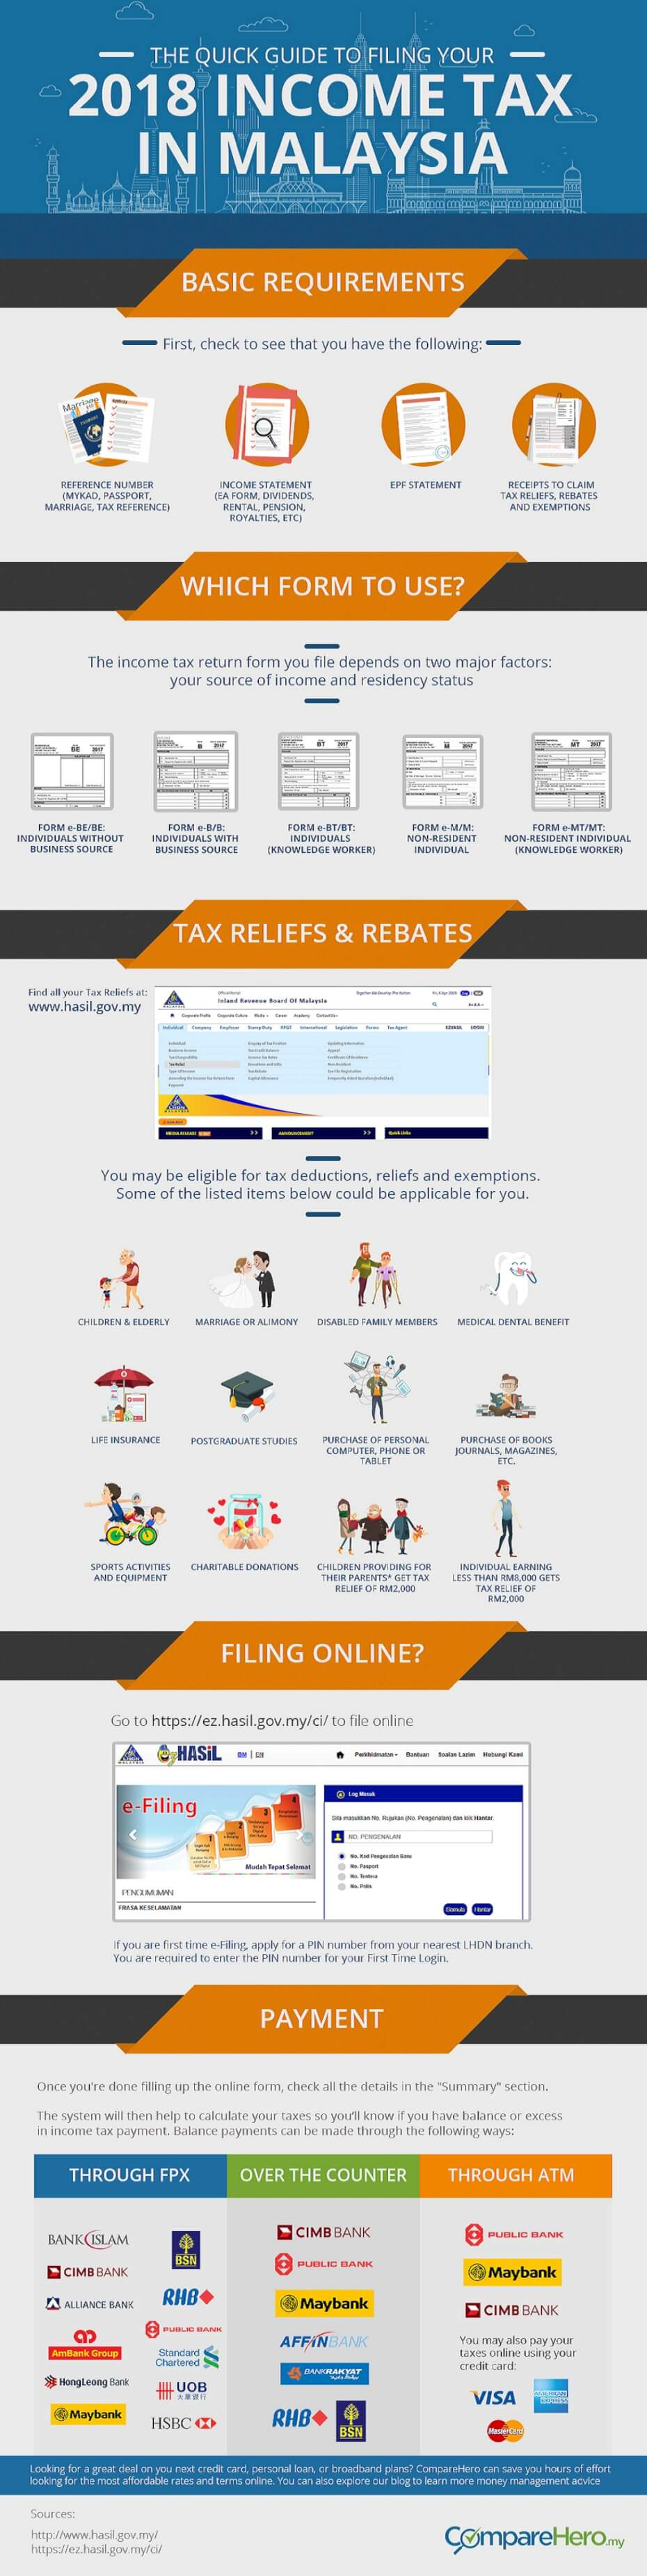 infographic complete malaysia personal income tax guide 2018